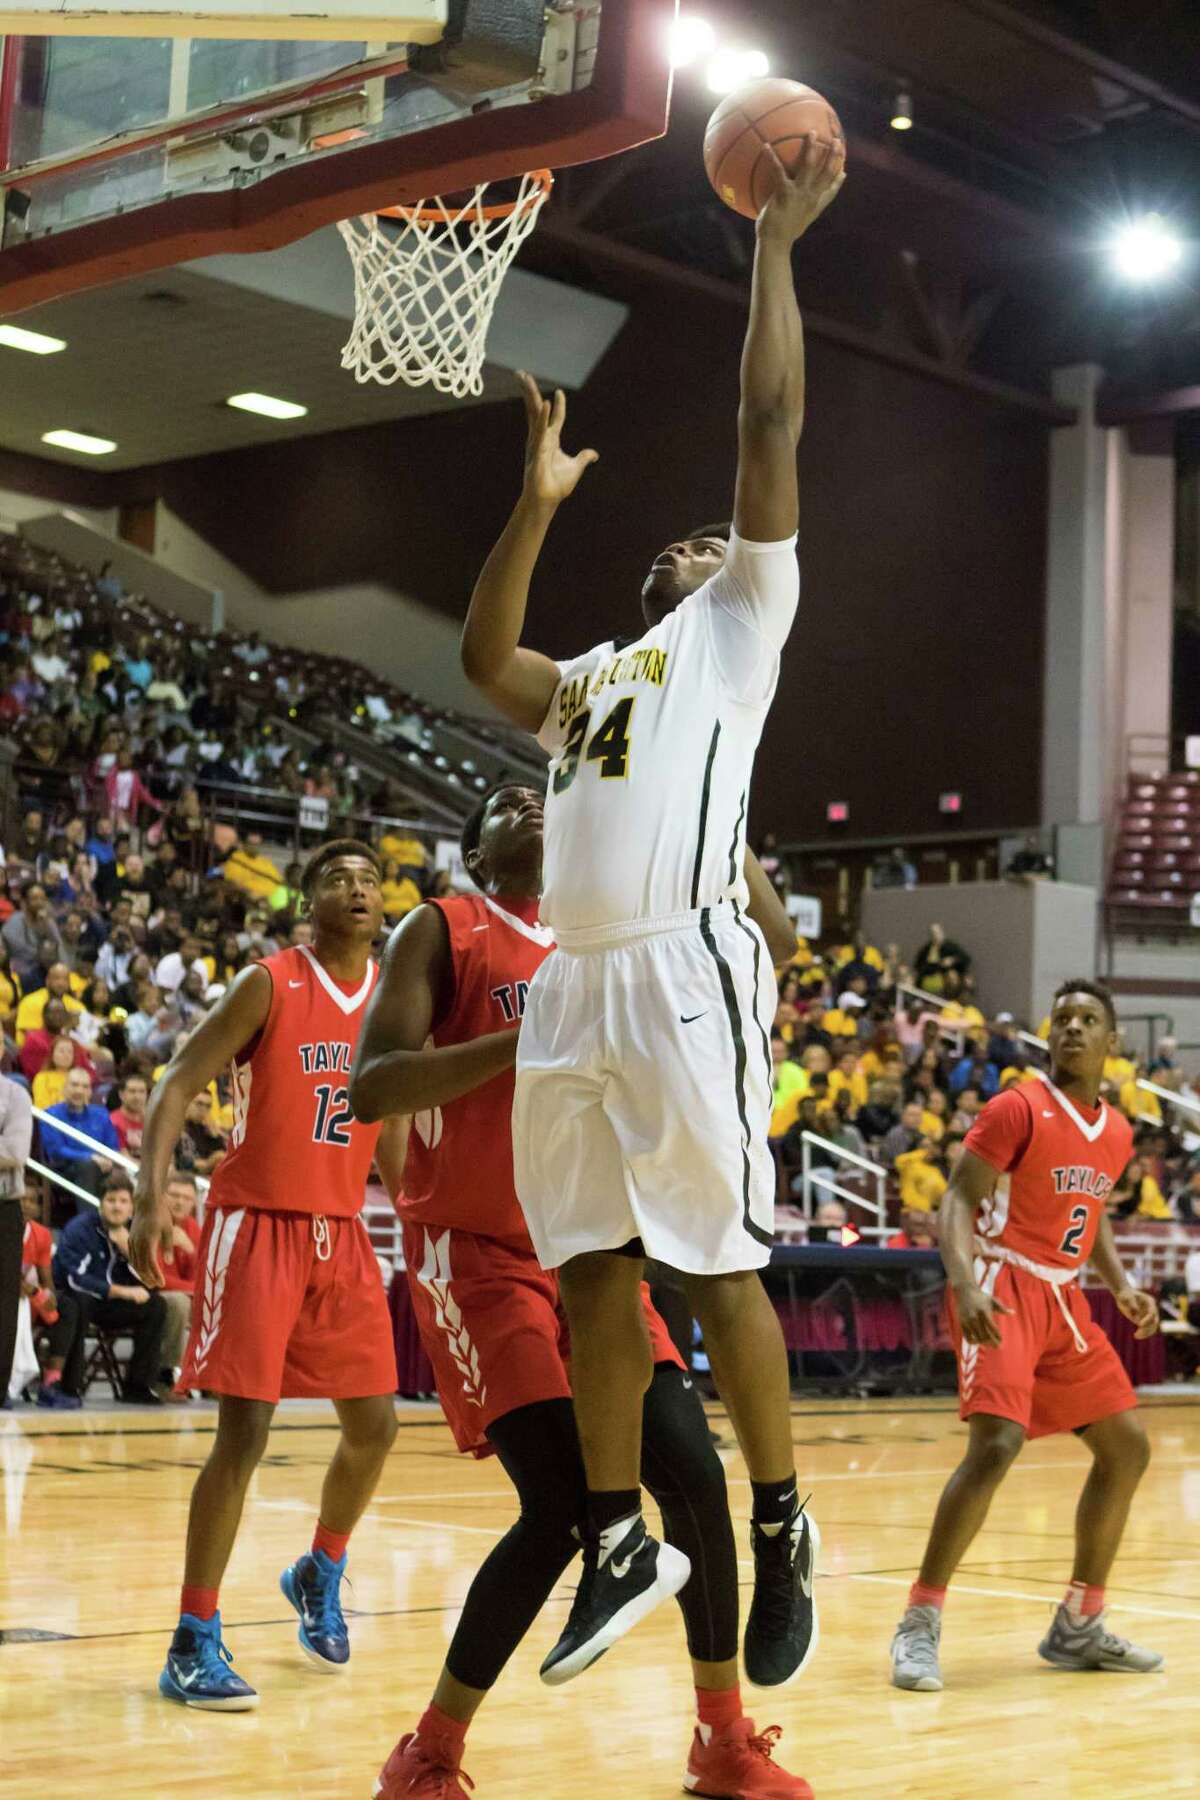 Sam Houston Tigers forward Carlton Prejean (34) puts back a rebound in the first quarter against the Alief Taylor Lions in the Class 6A Boys Basketball Region III semifinals at the Campbell Center, Friday, March 4, 2016, in Houston, TX.